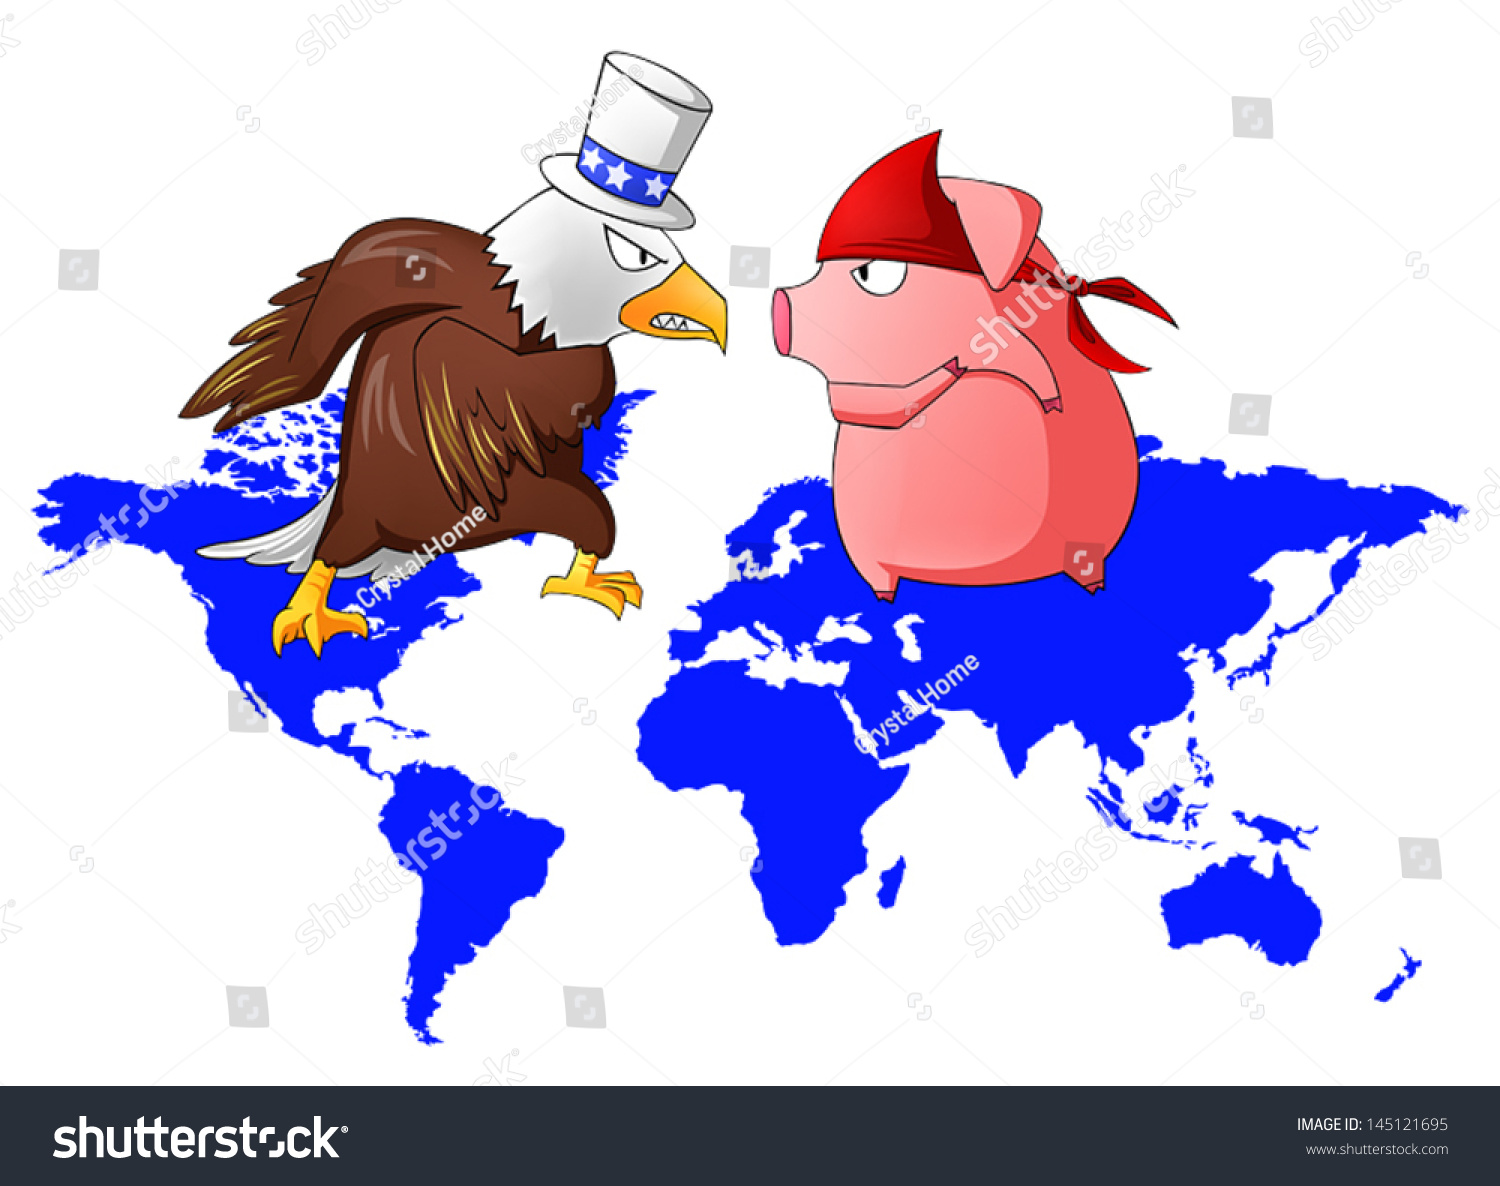 Cartoon parody giant eagle red pig vectores en stock 145121695 cartoon parody of giant eagle and red pig is fighting above the world map continent from gumiabroncs Choice Image